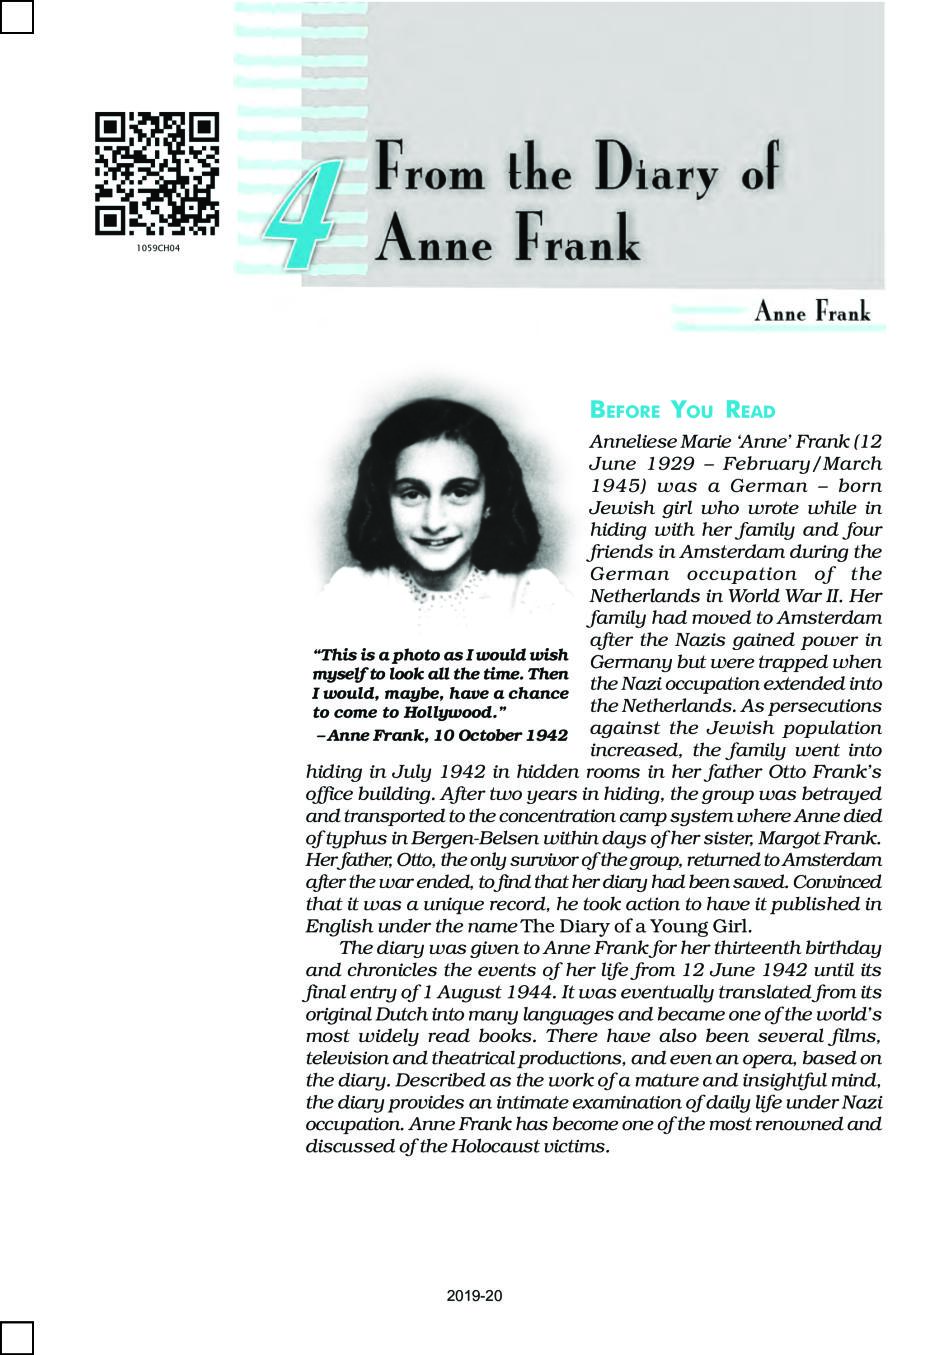 NCERT Book Class 10 English First Flight Chapter 4 From the Diary of Anne Frank